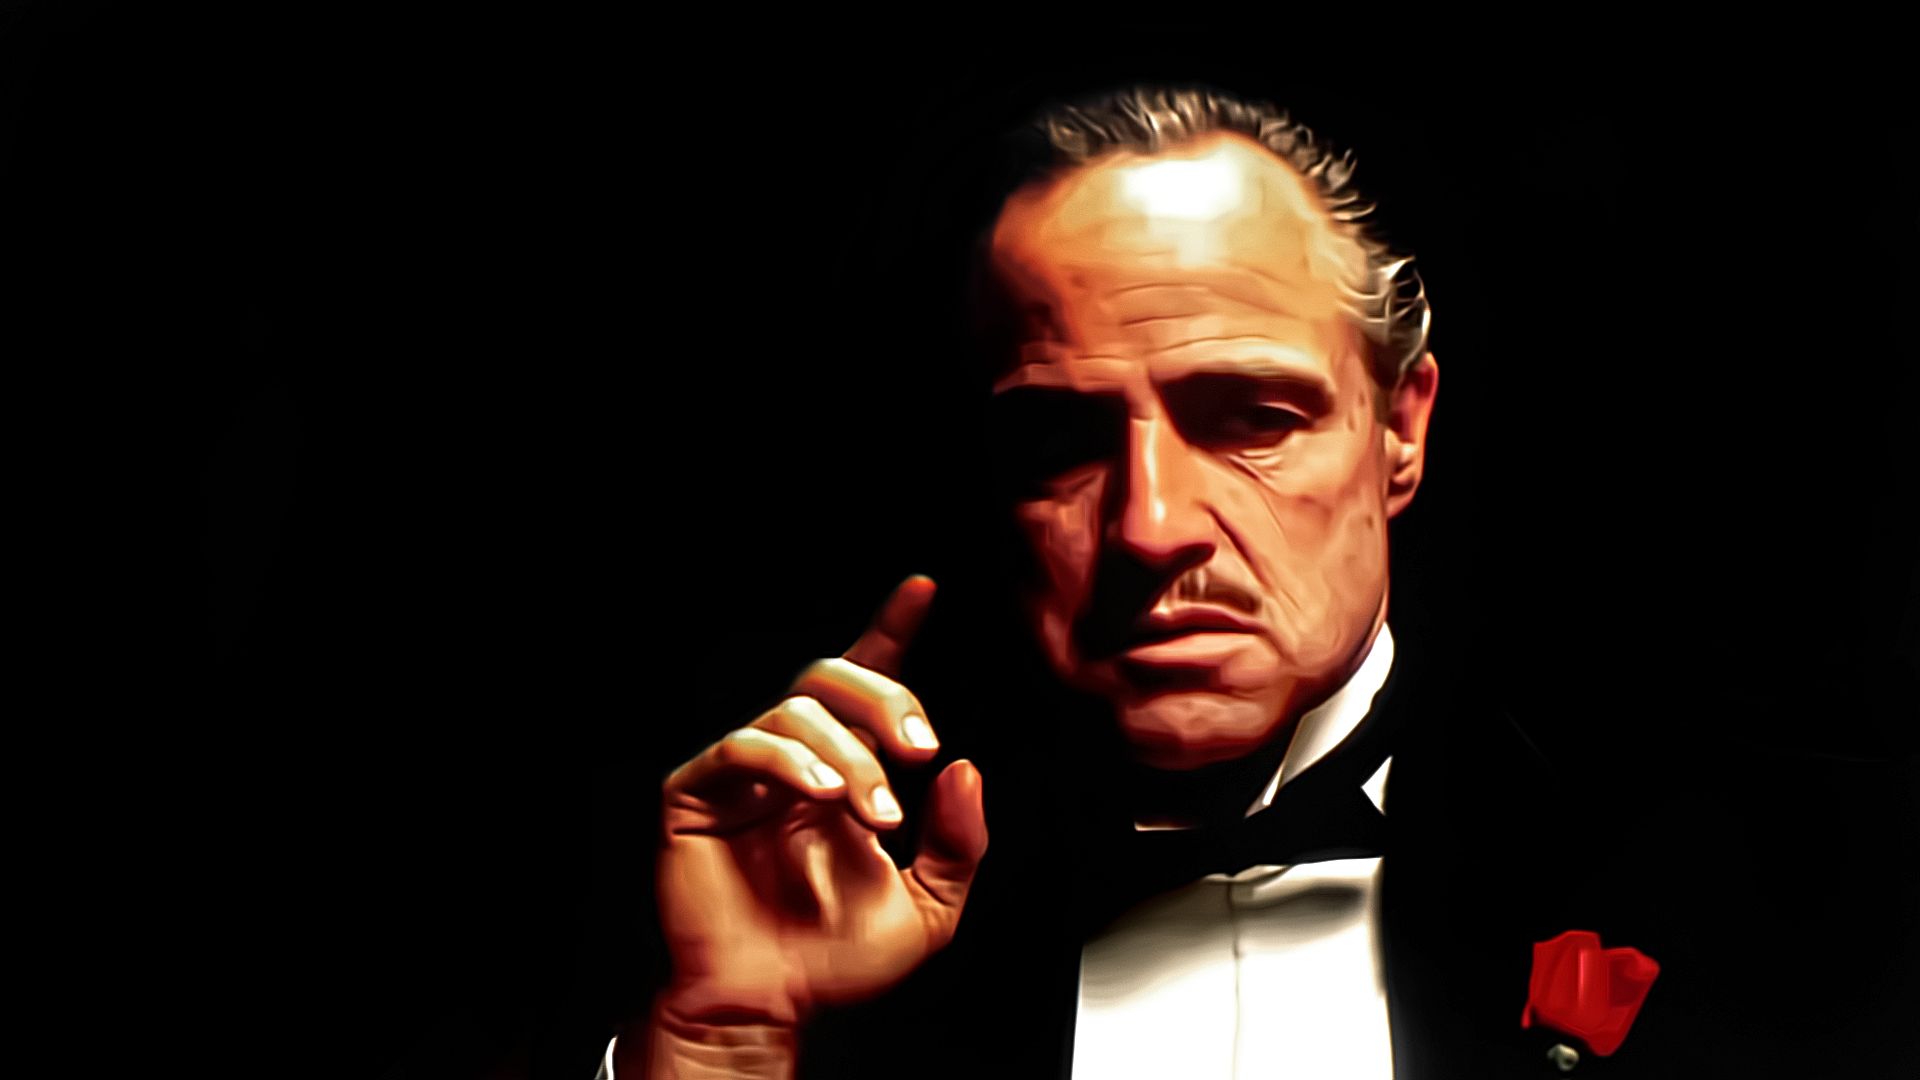 Godfather Wallpapers in HDQ | 1920x1080, by Dorthy Gonzalas